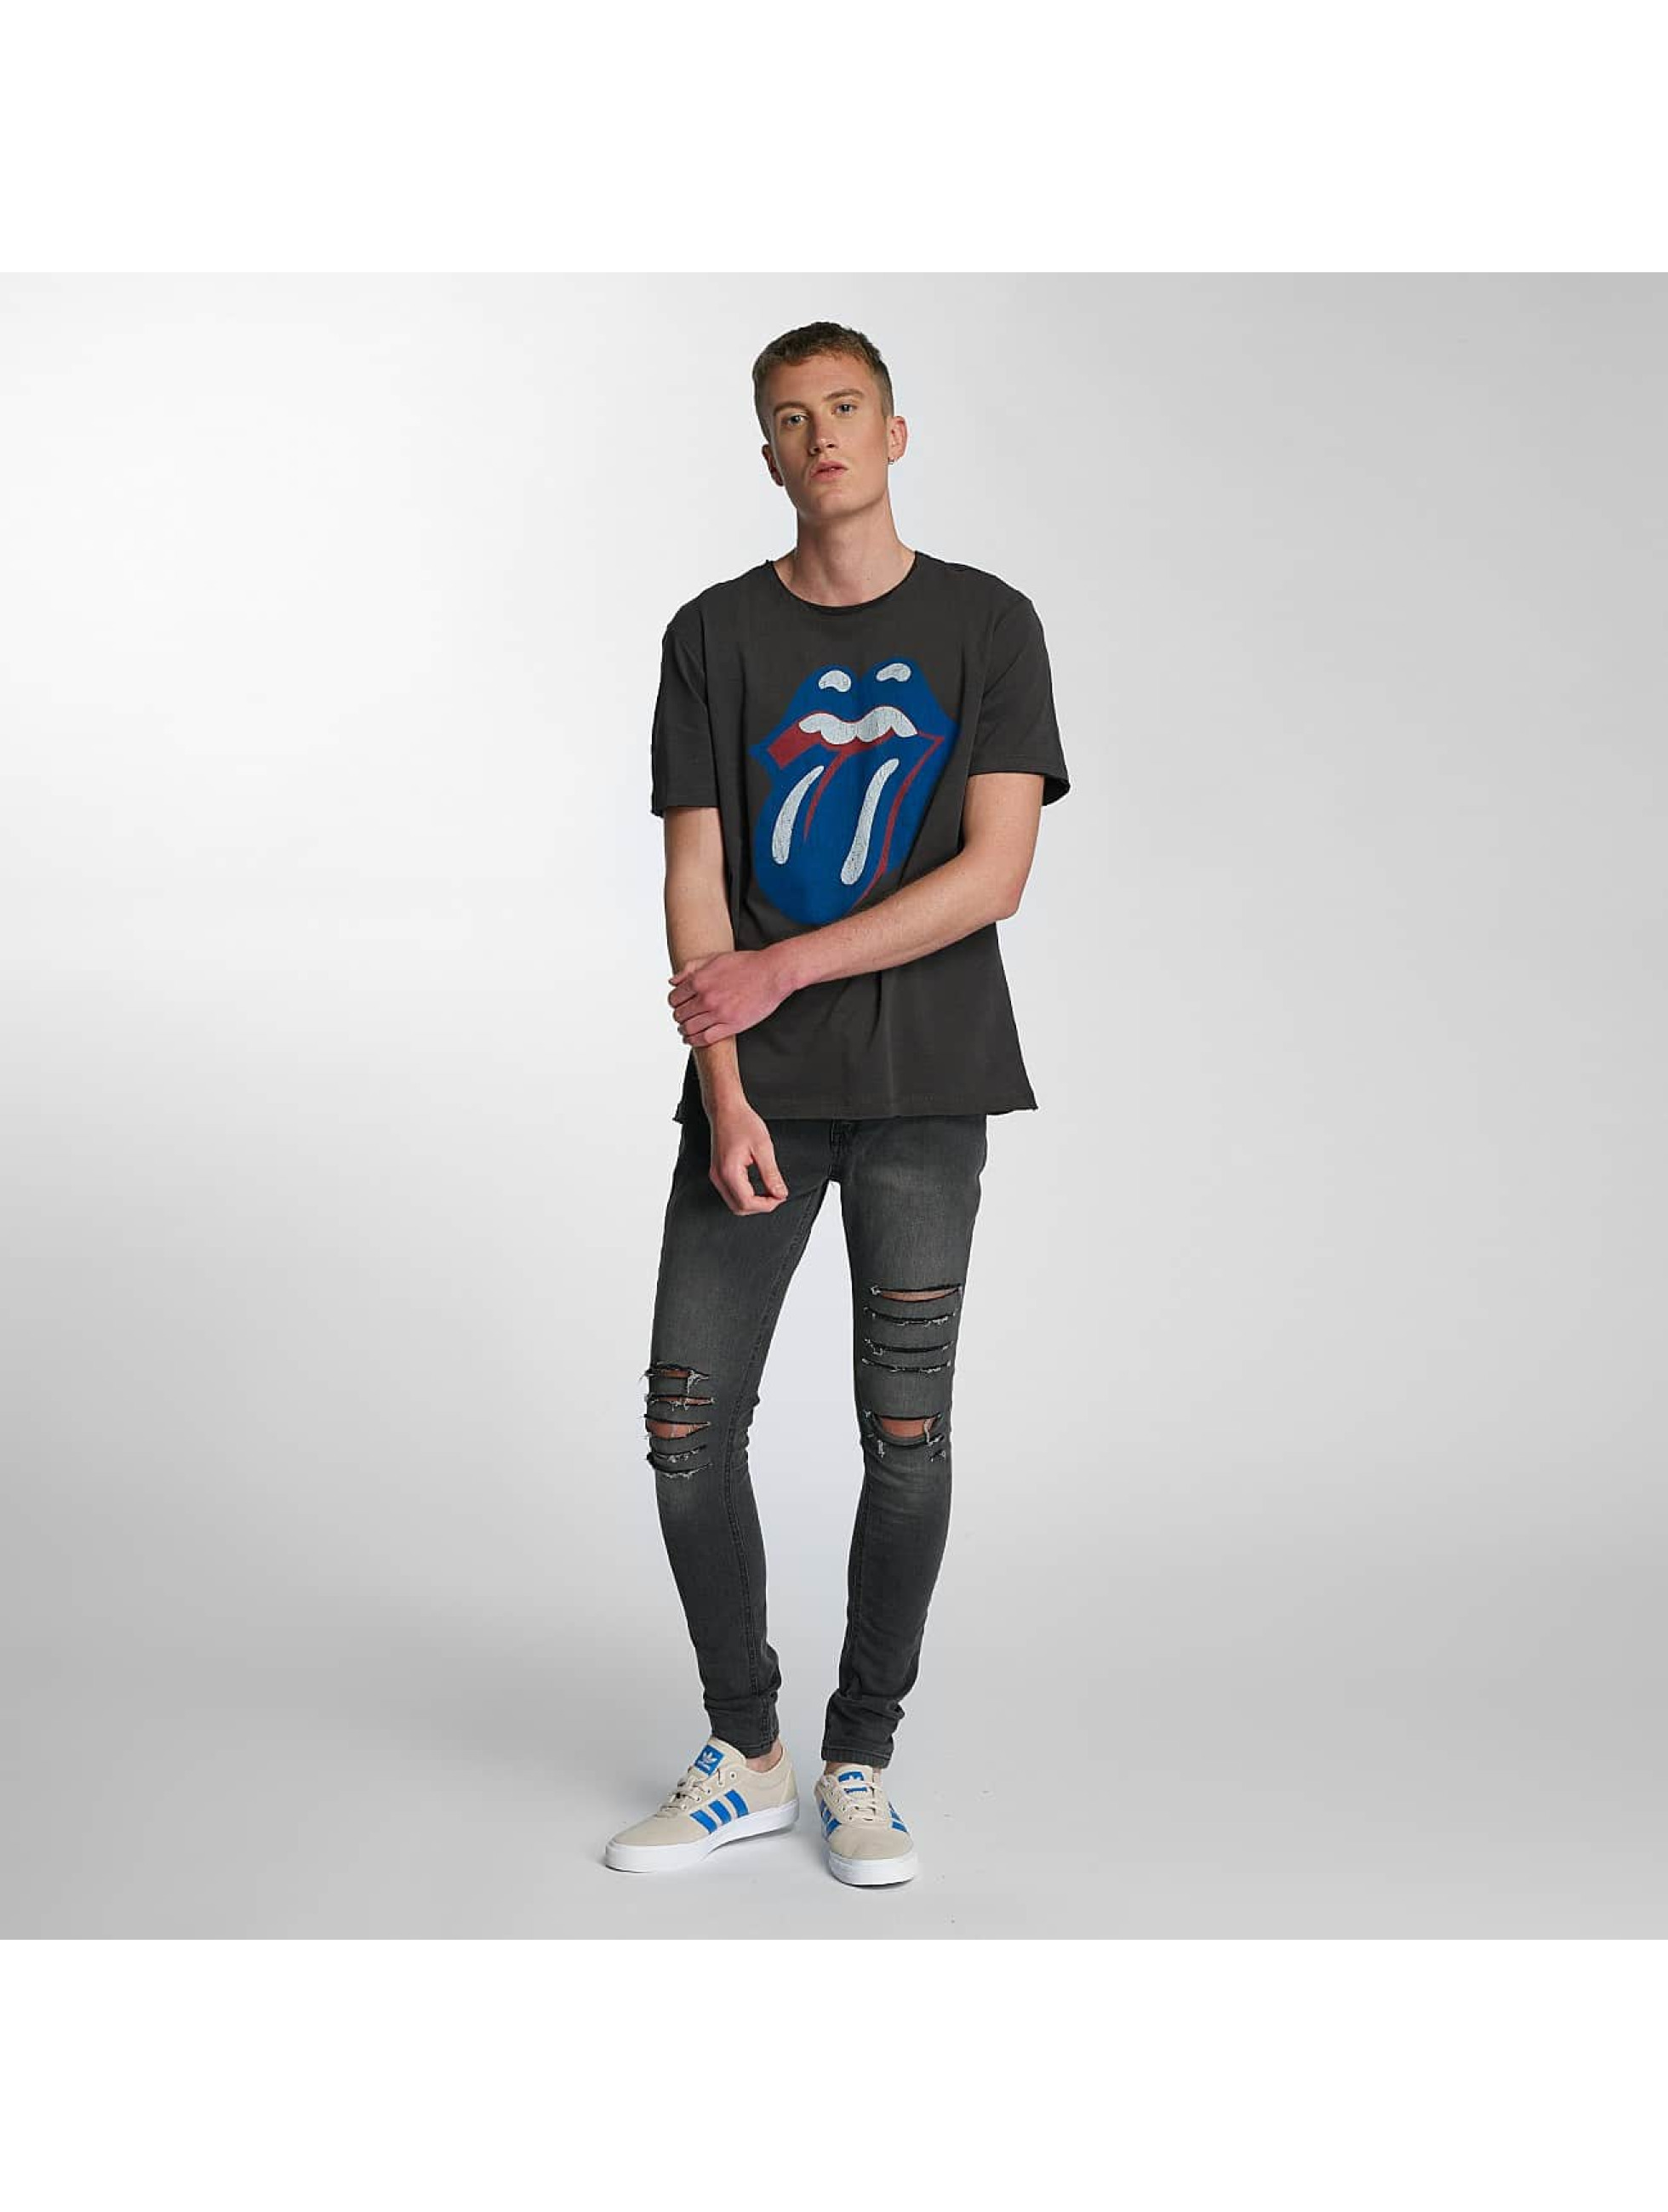 Amplified T-Shirt Rolling Stones Blue und Lonesome grey